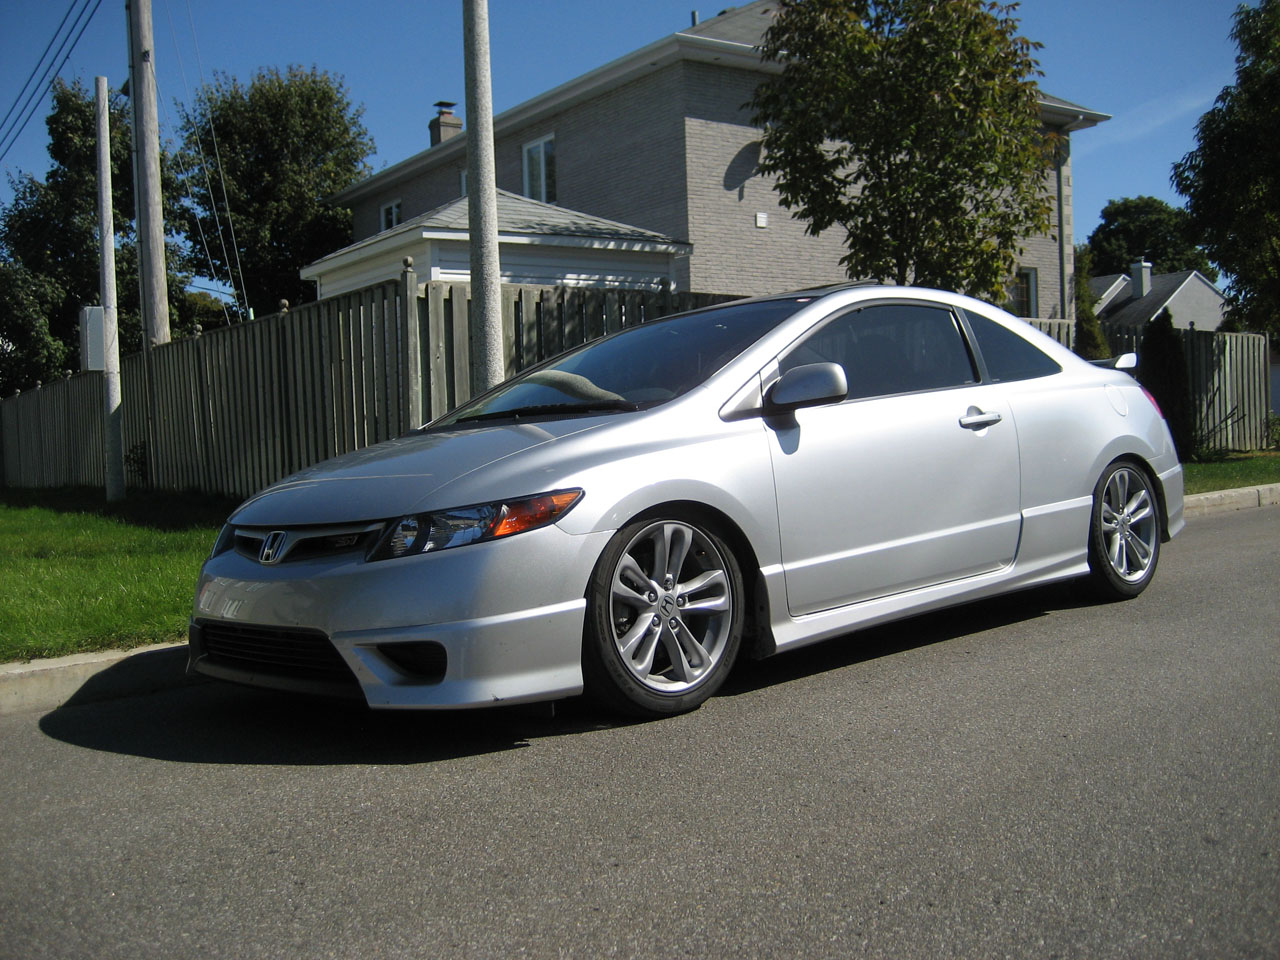 Honda 2006 honda coupe : 2008 Honda Civic Si Coupe 1/4 mile Drag Racing timeslip specs 0-60 ...